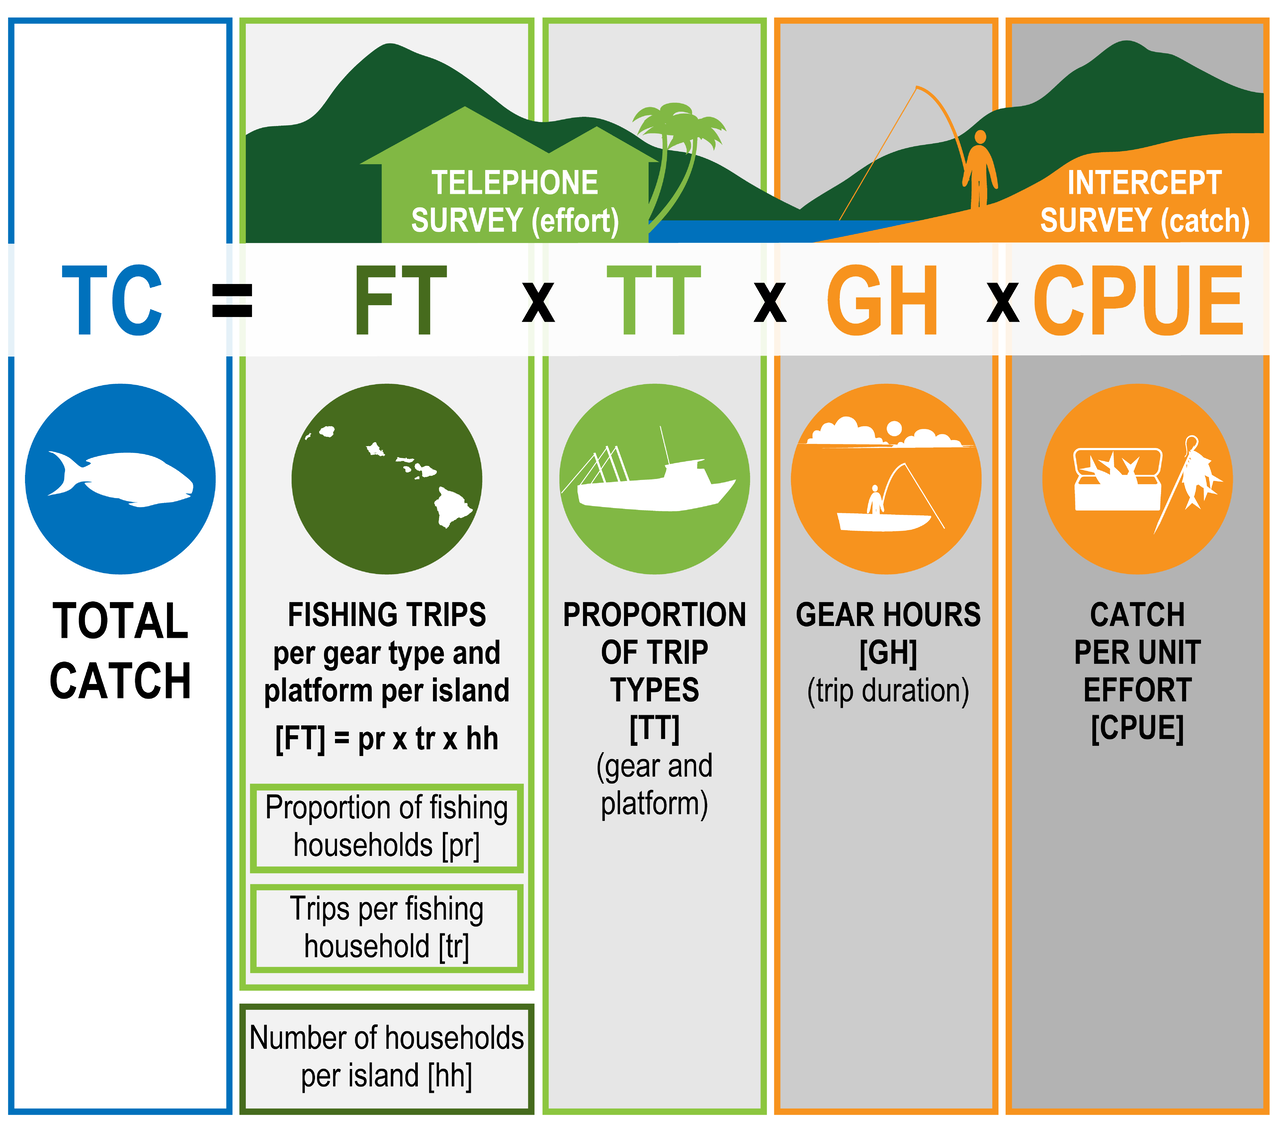 Figure showing total catch calculation. Information was collected from telephone surveys (outlined in green) or intercept surveys (outlined in orange)